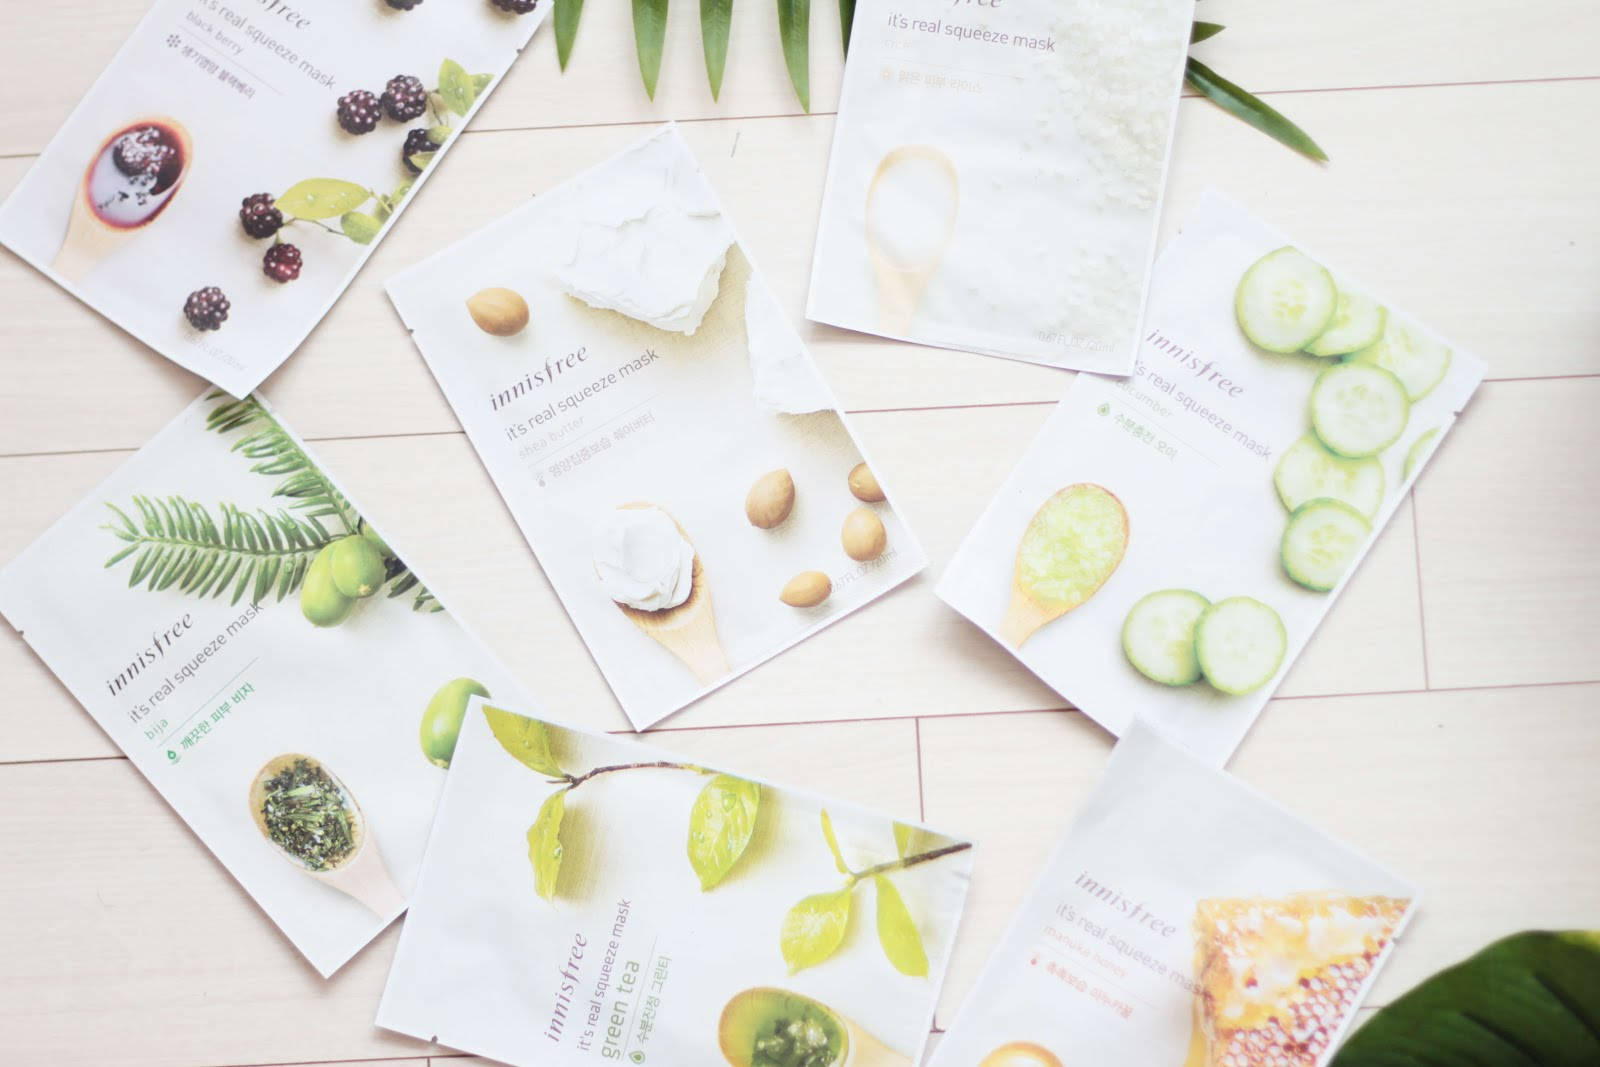 innisfree sheet masks kbeauty blogger